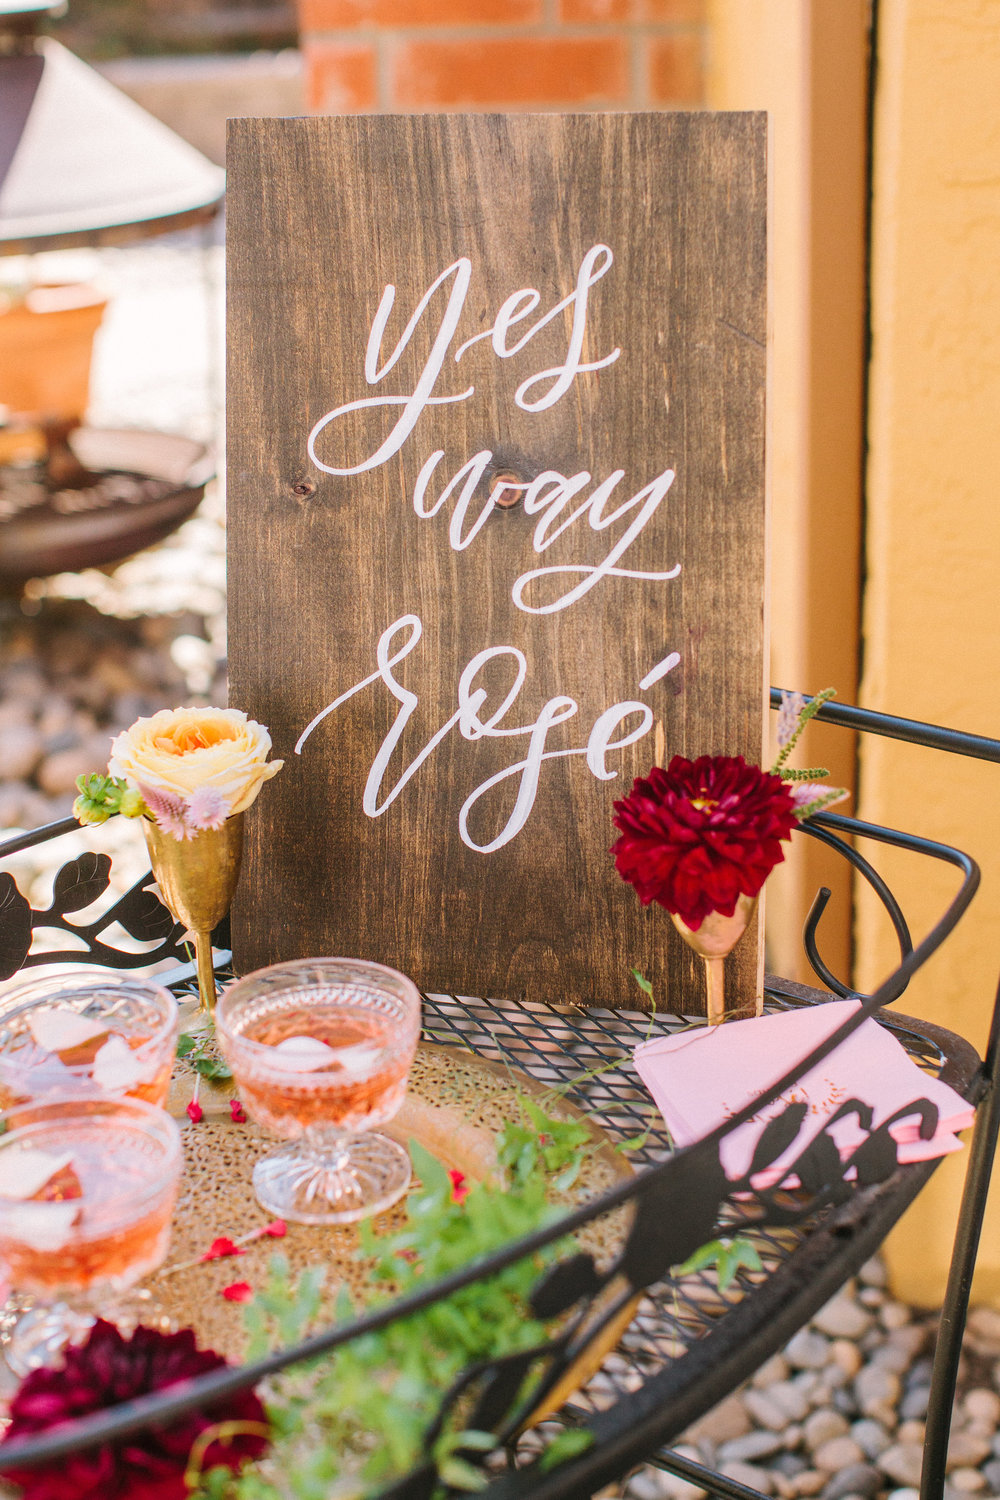 Yes Way Rosé hand lettered signage